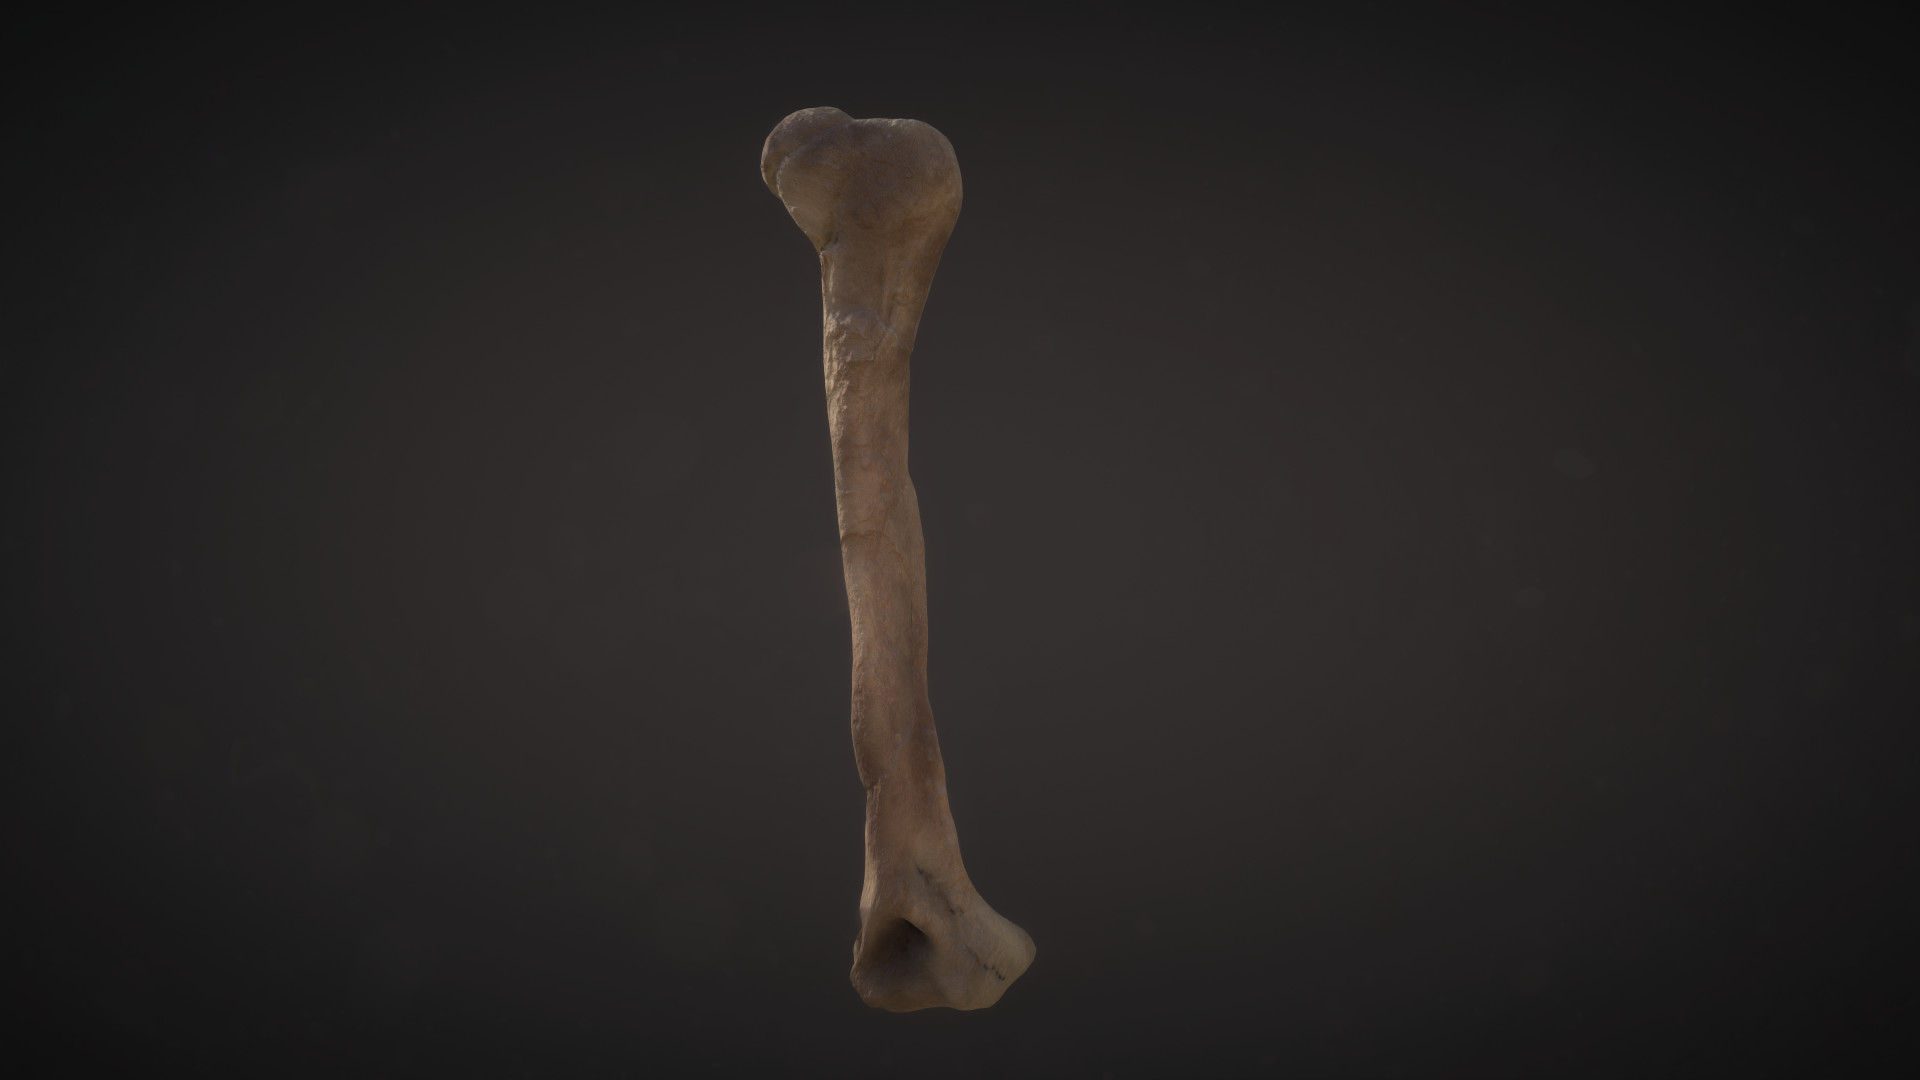 Conor scott bone 2